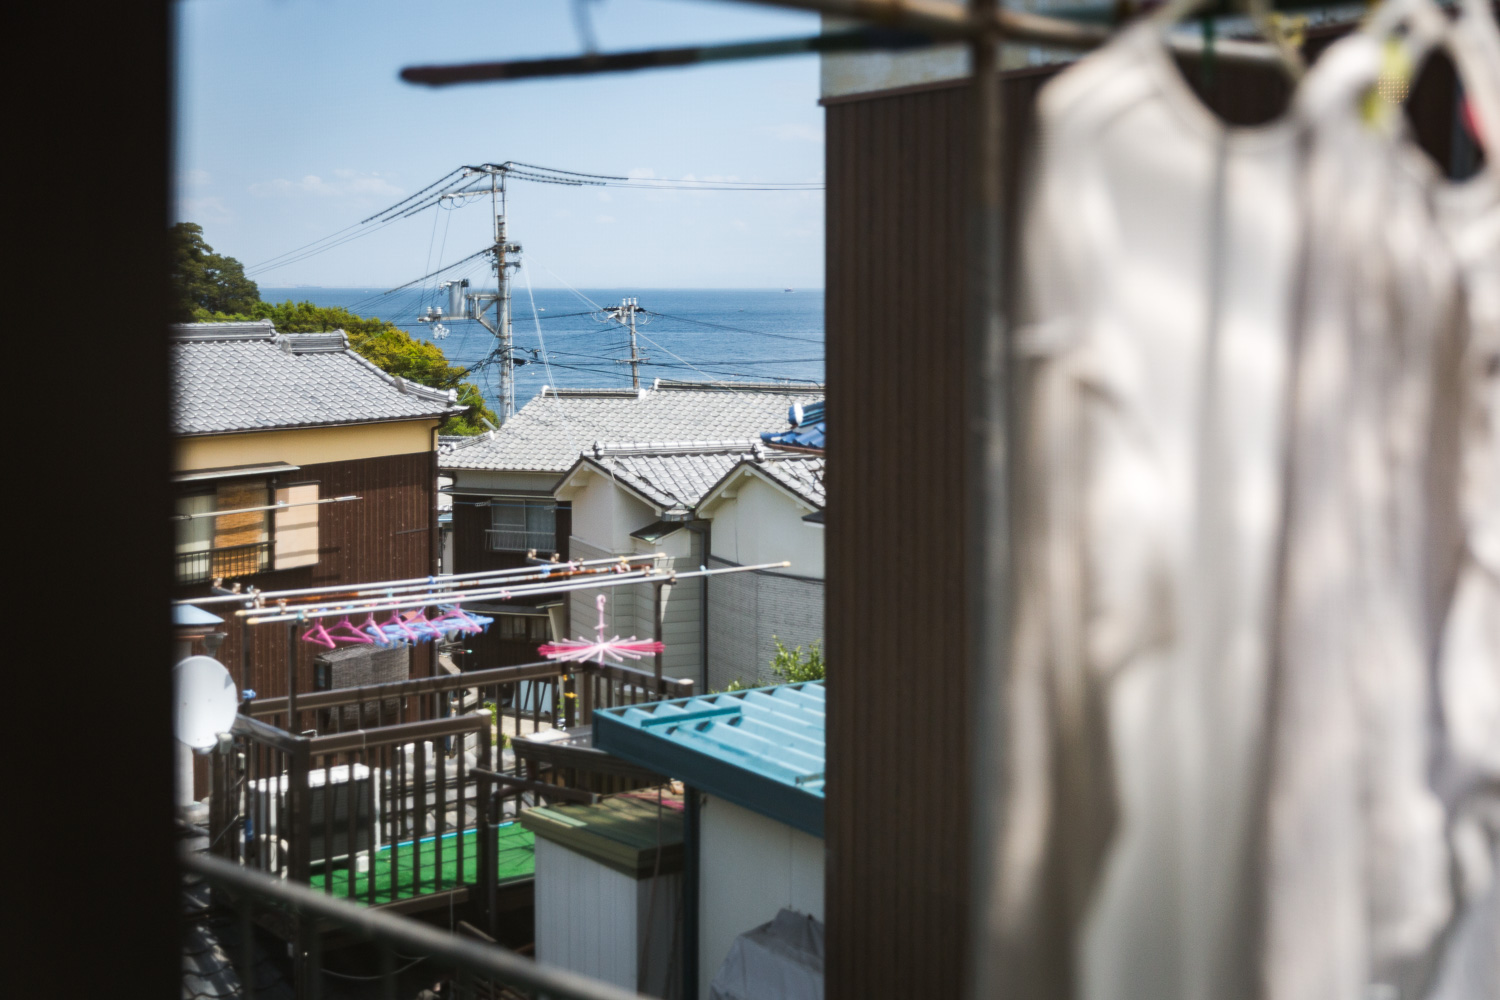 A view of rooftops, laundry, and the ocean from a house balcony on Awaji Island, Japan